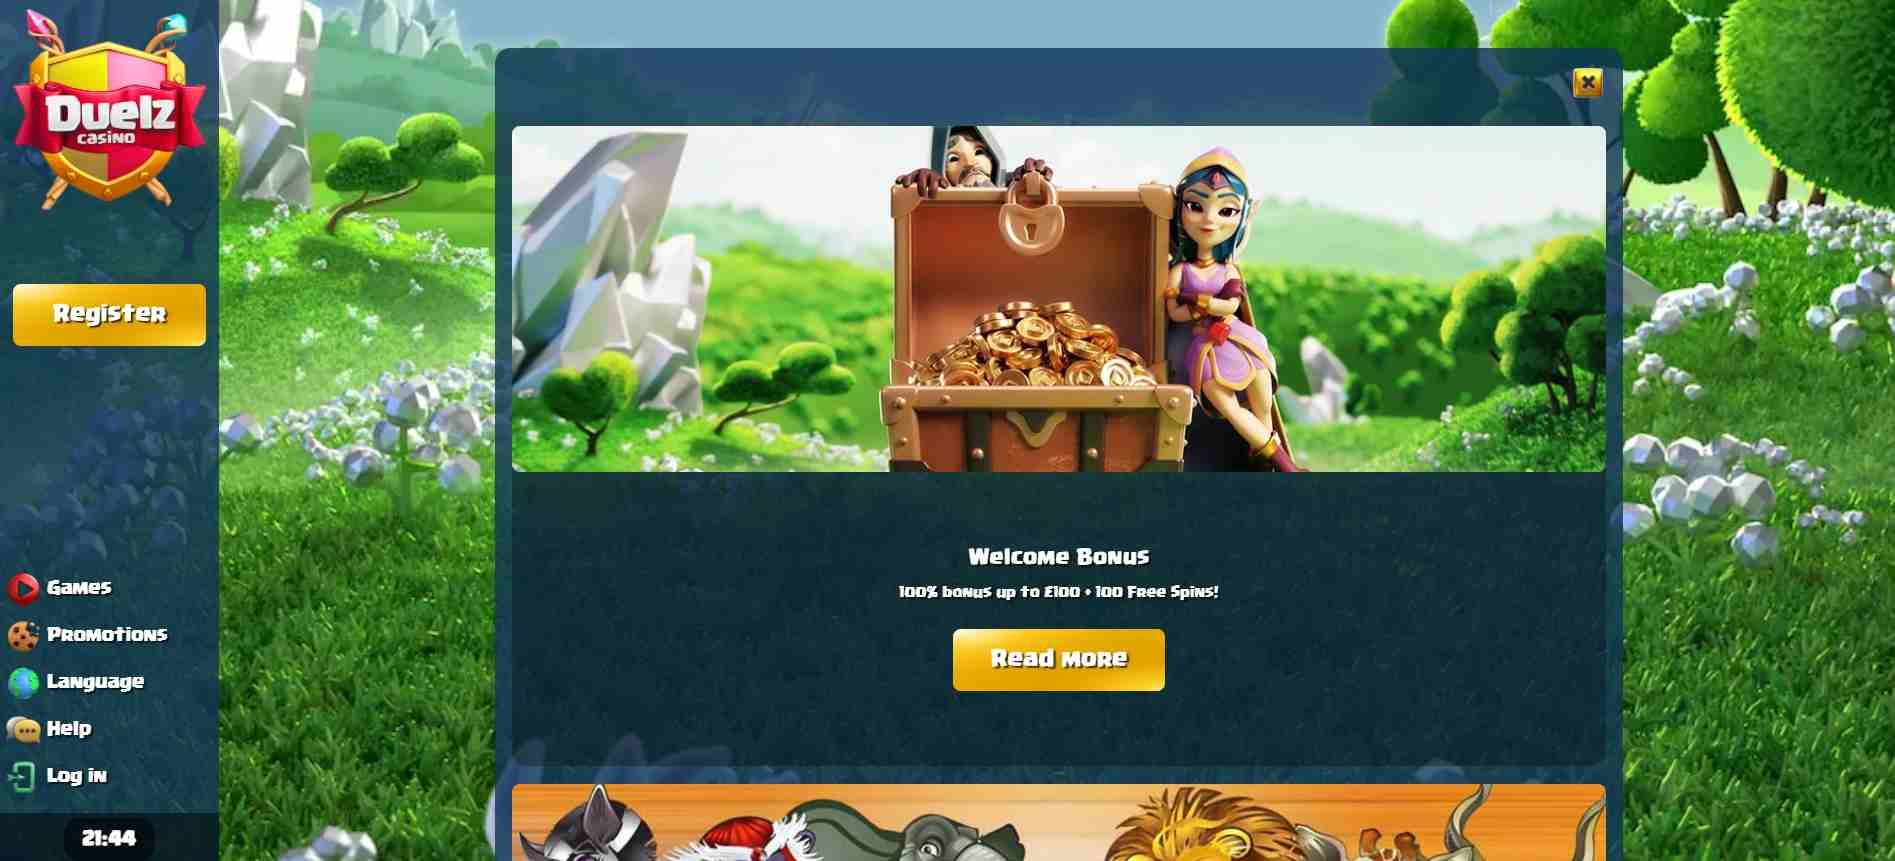 Duels casino fruit spins 25346